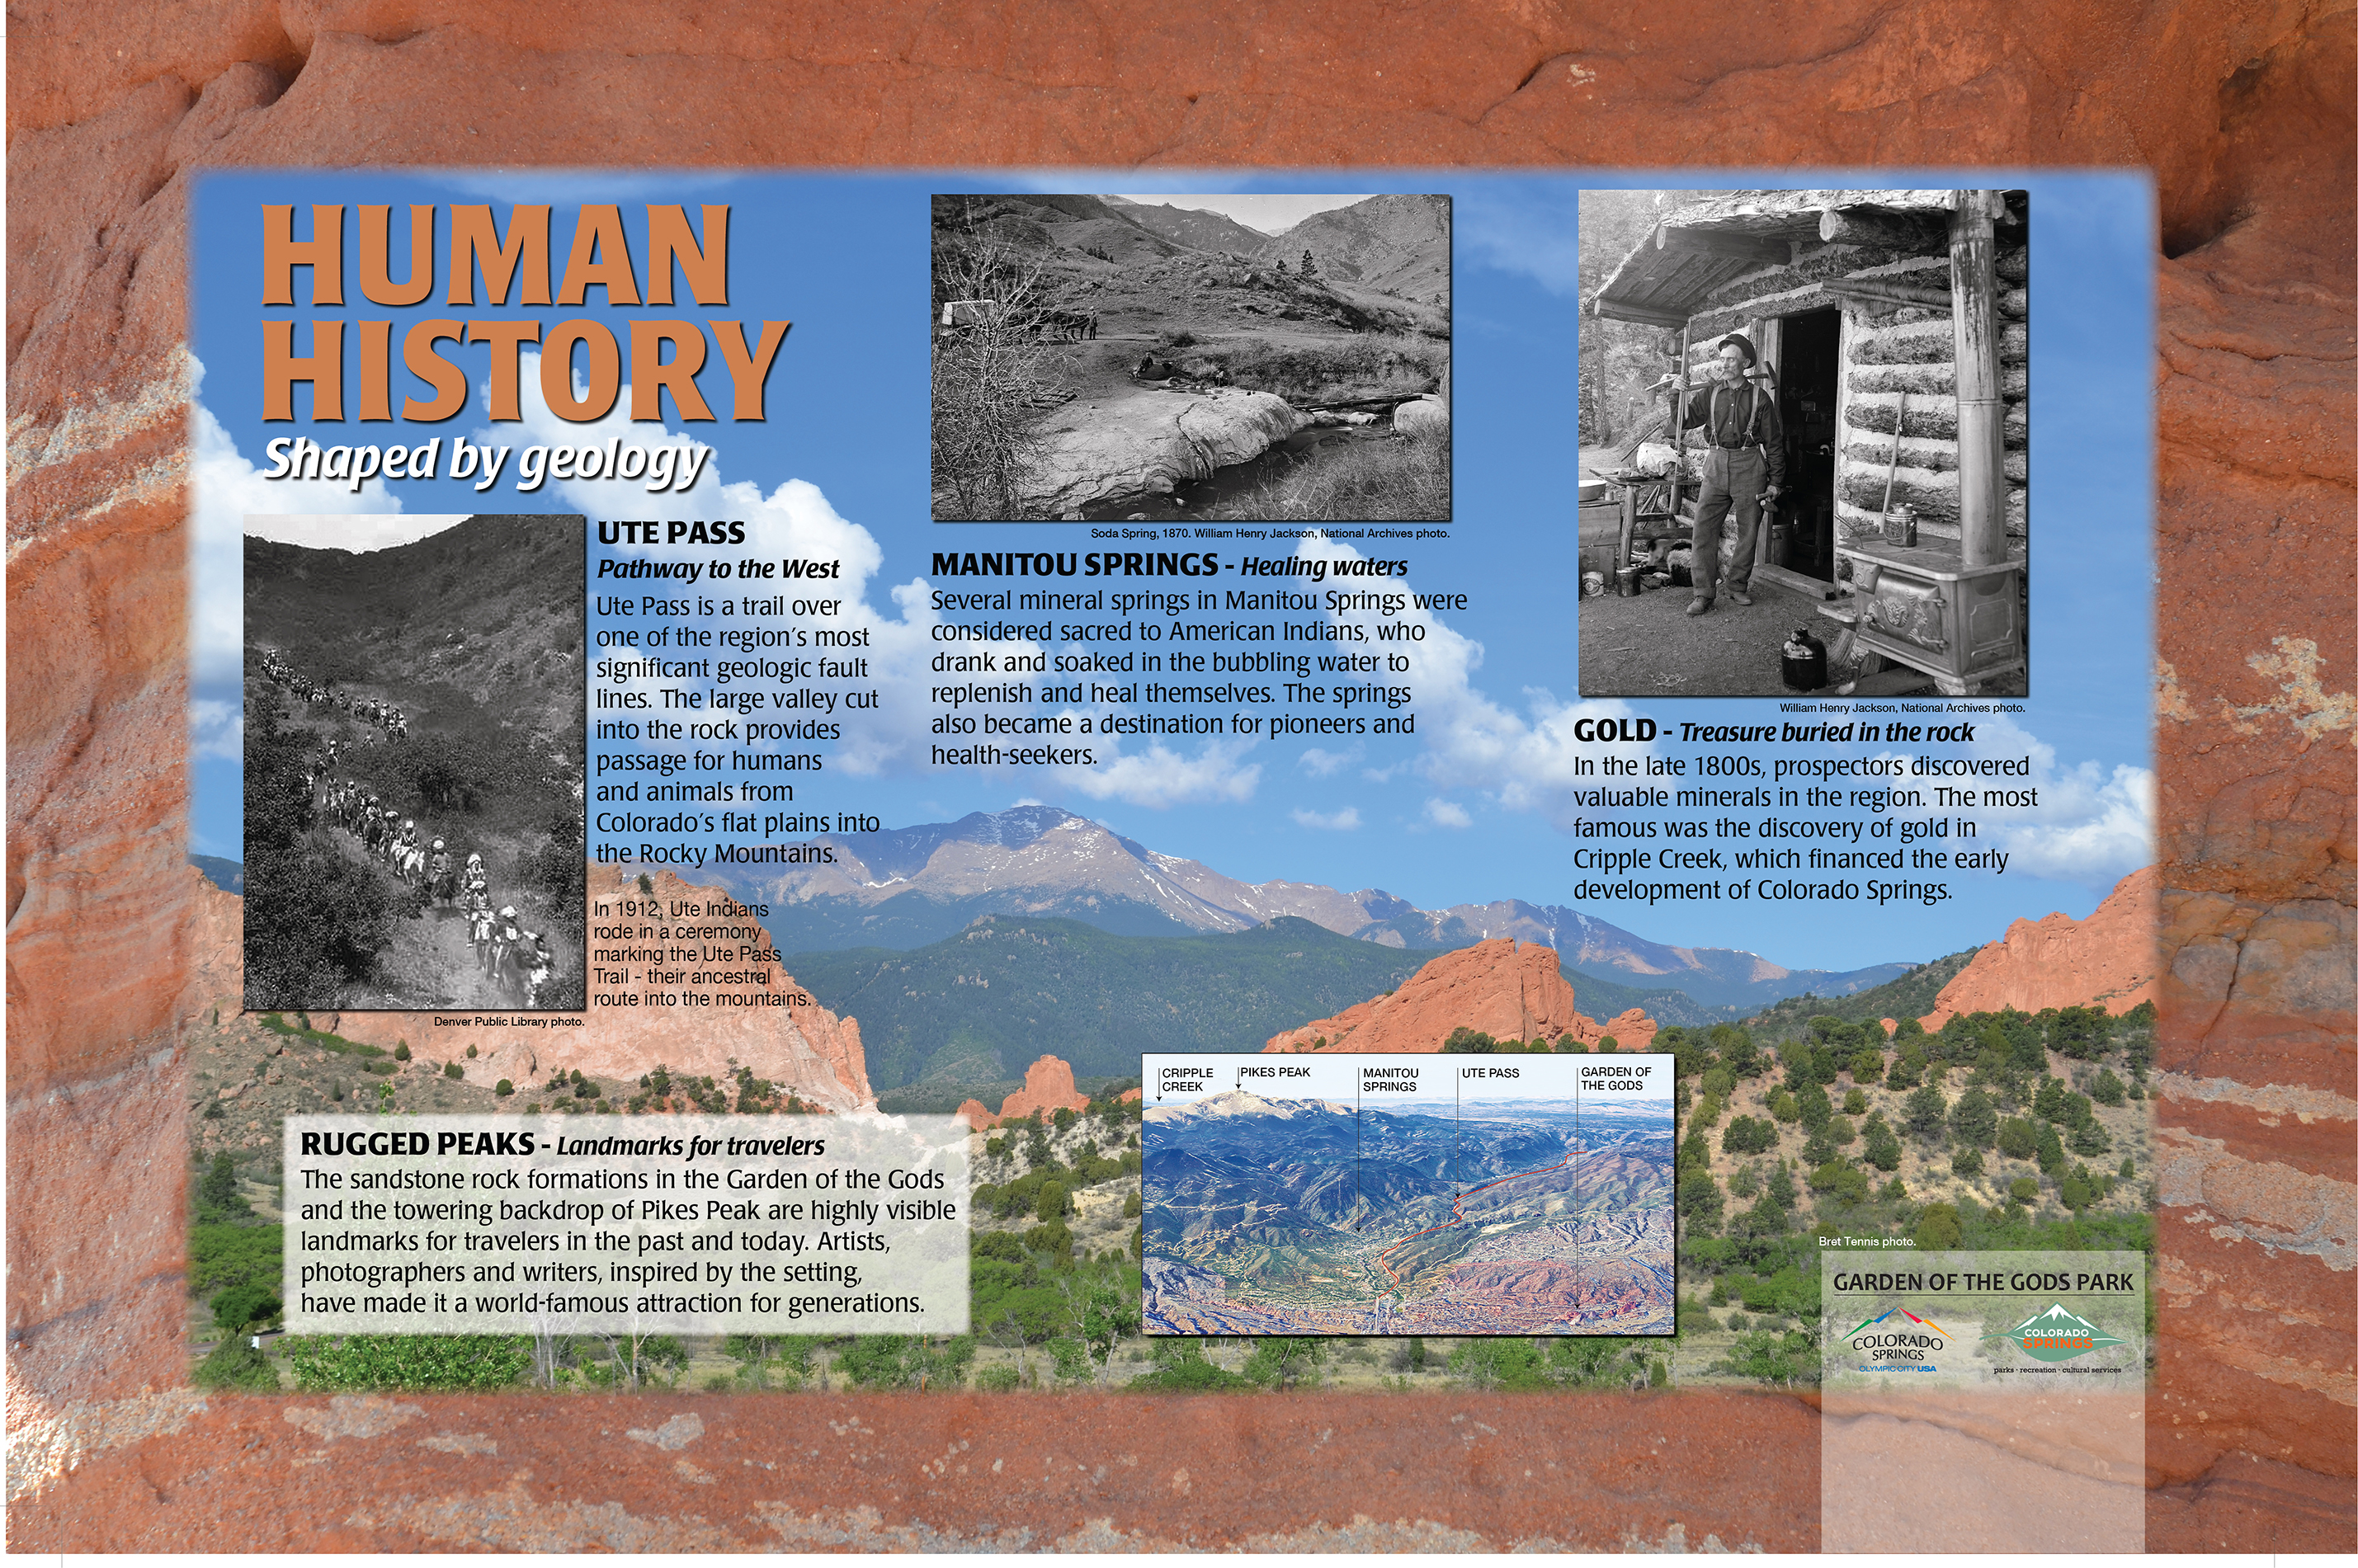 Human History-Shaped by geology